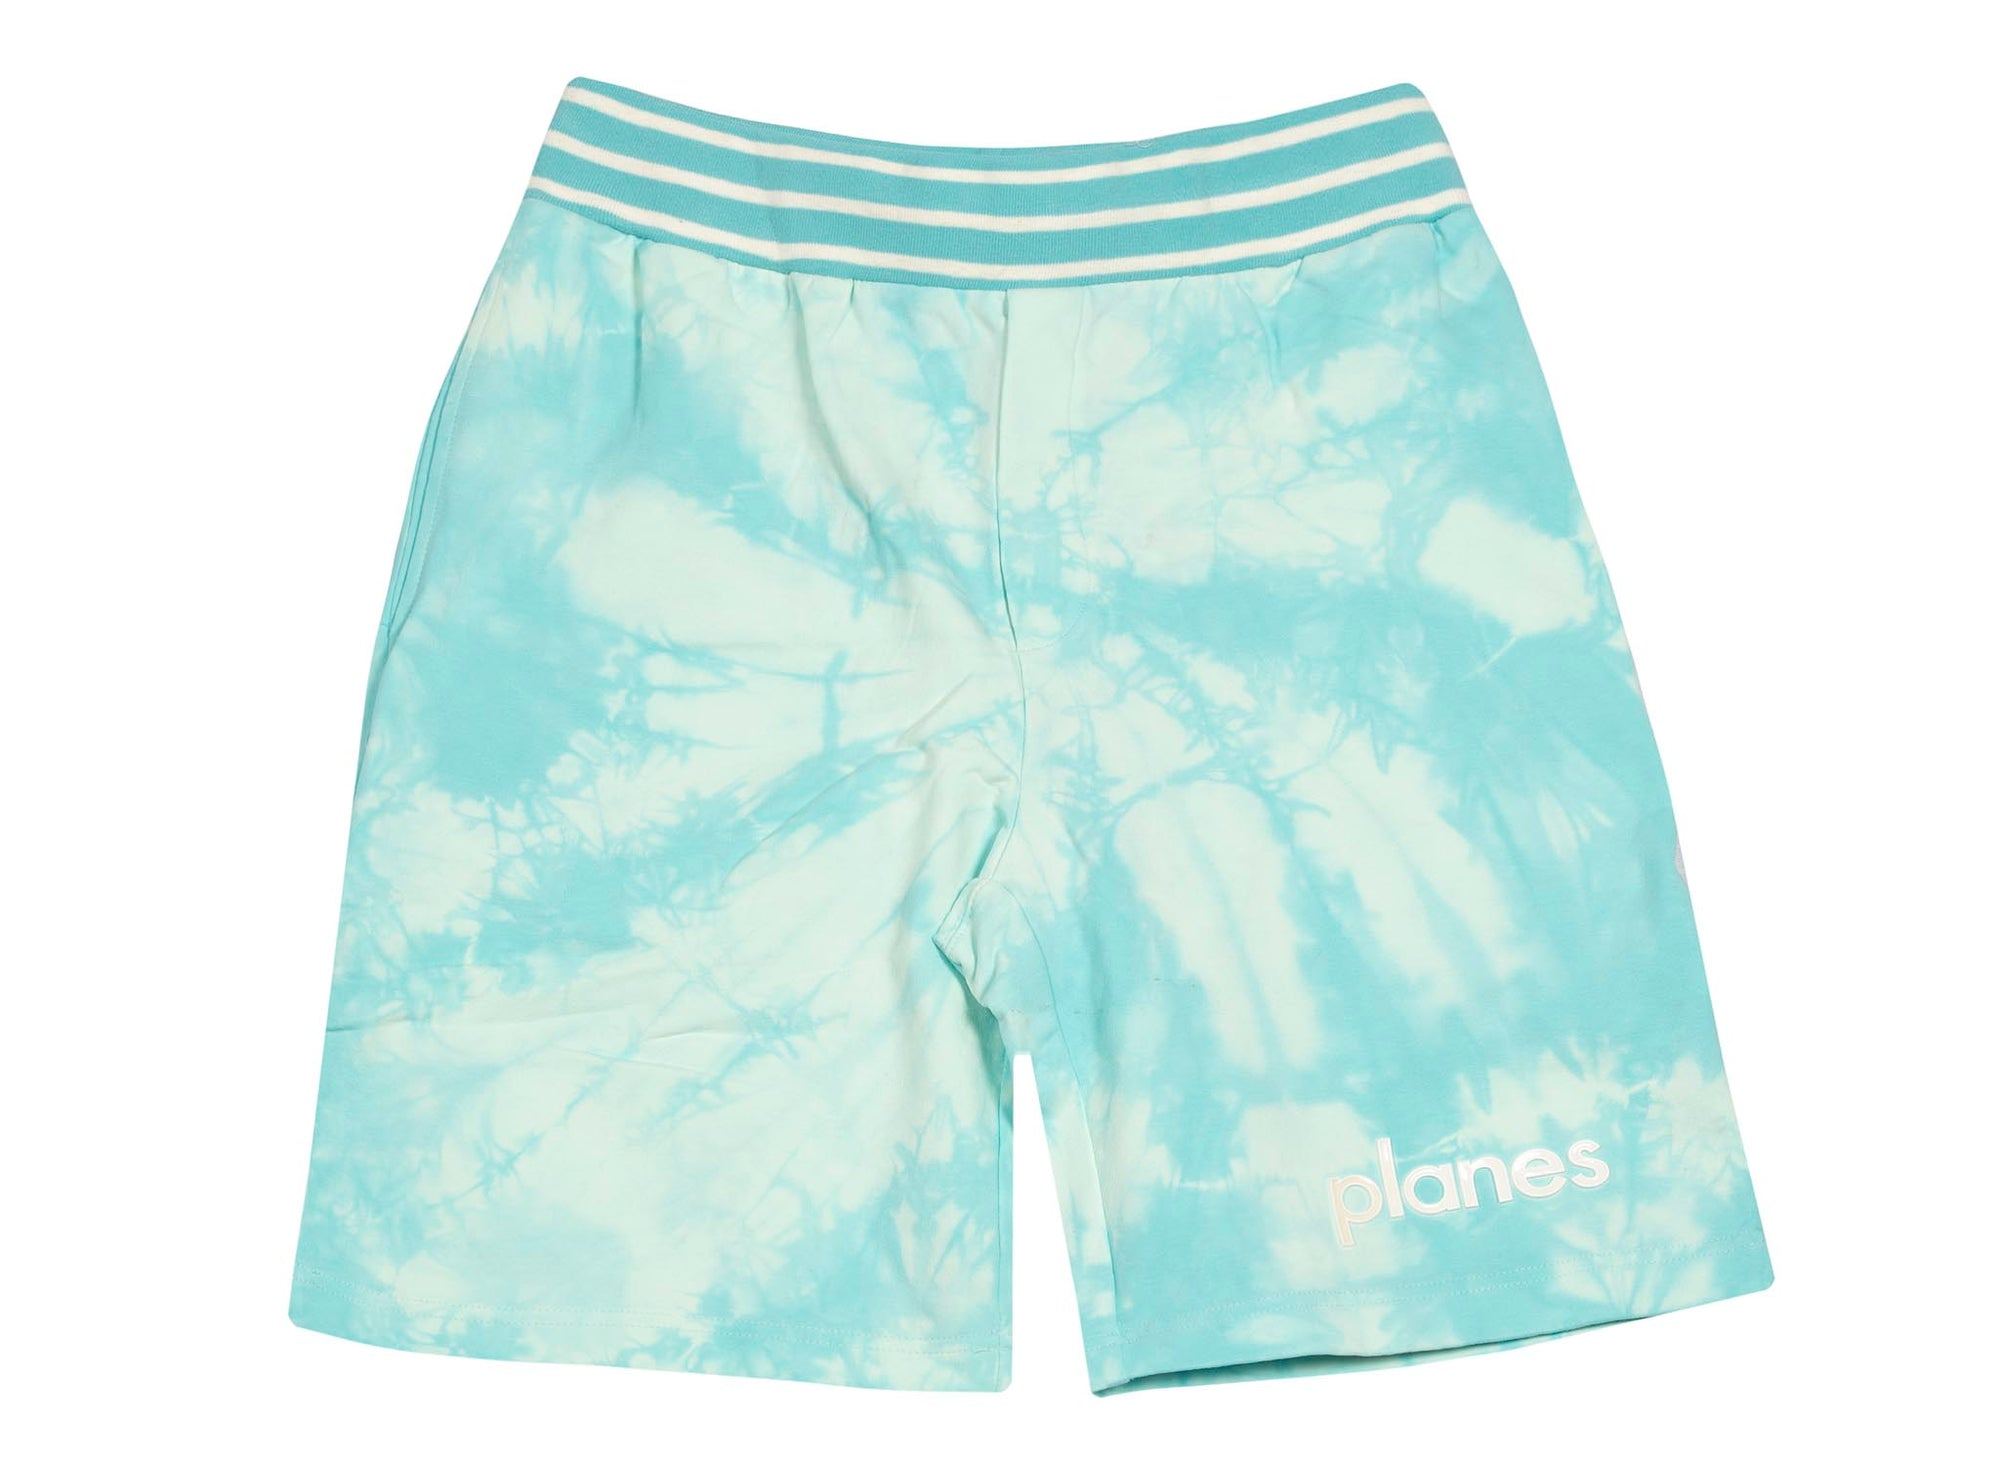 PAPER PLANES TAILSPIN SHORTS